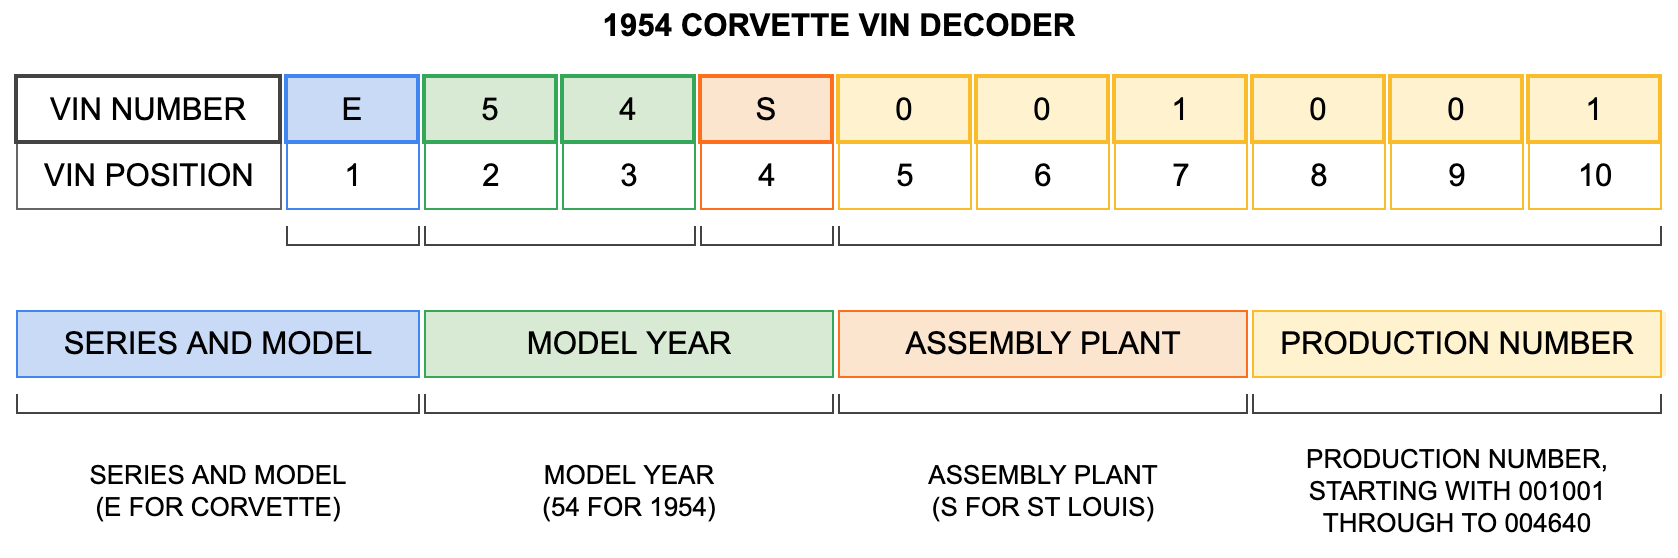 1954 Corvette VIN Decoder